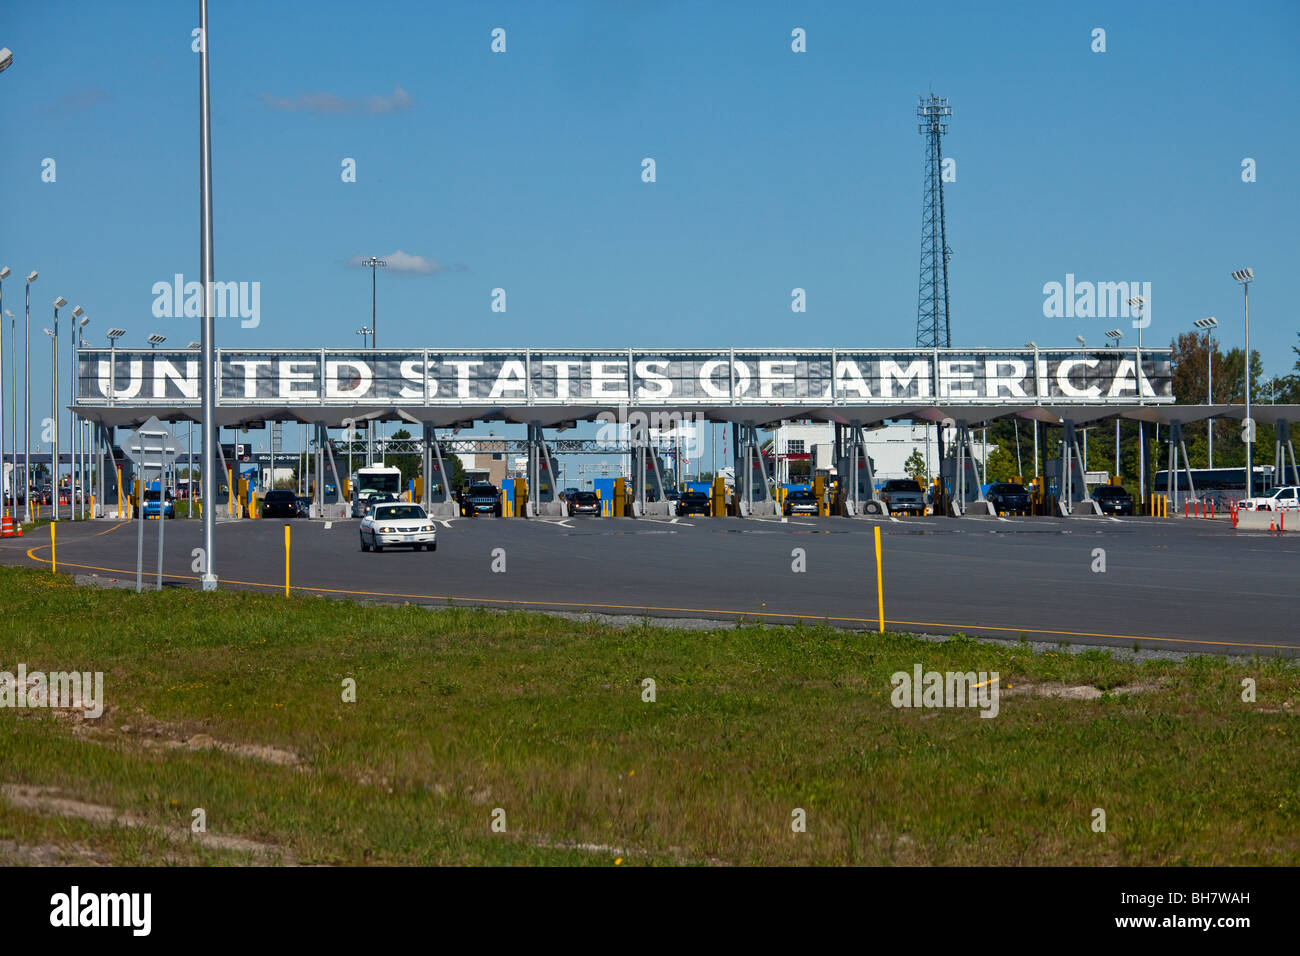 Champlain Border Crossing between United States and Canada - Stock Image